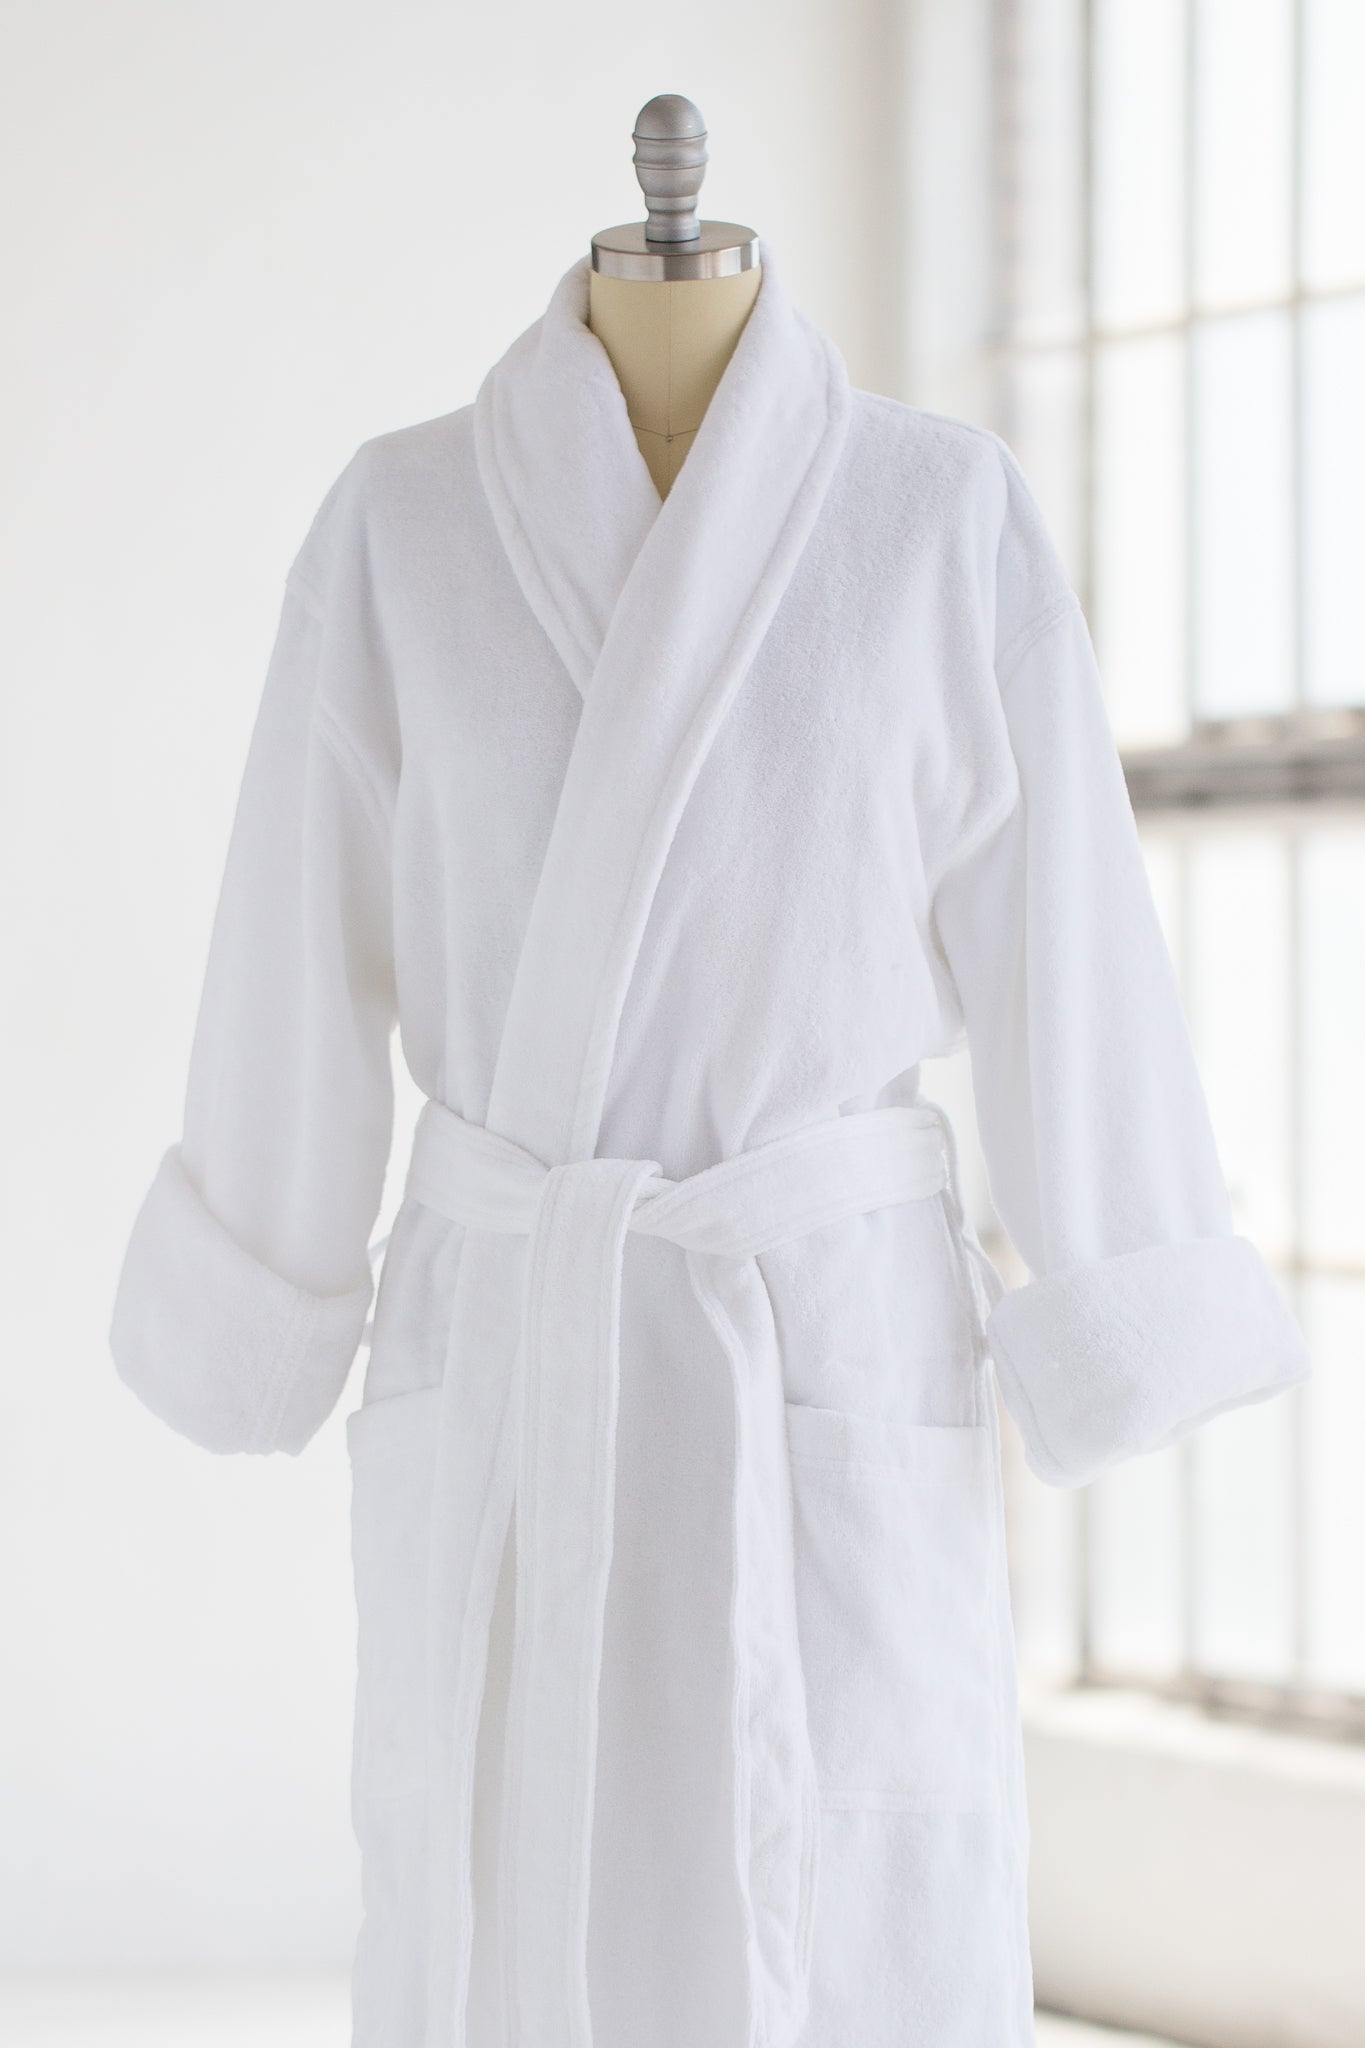 buying cheap Good Prices search for clearance Cotton Terry Velour Spa Robe - White